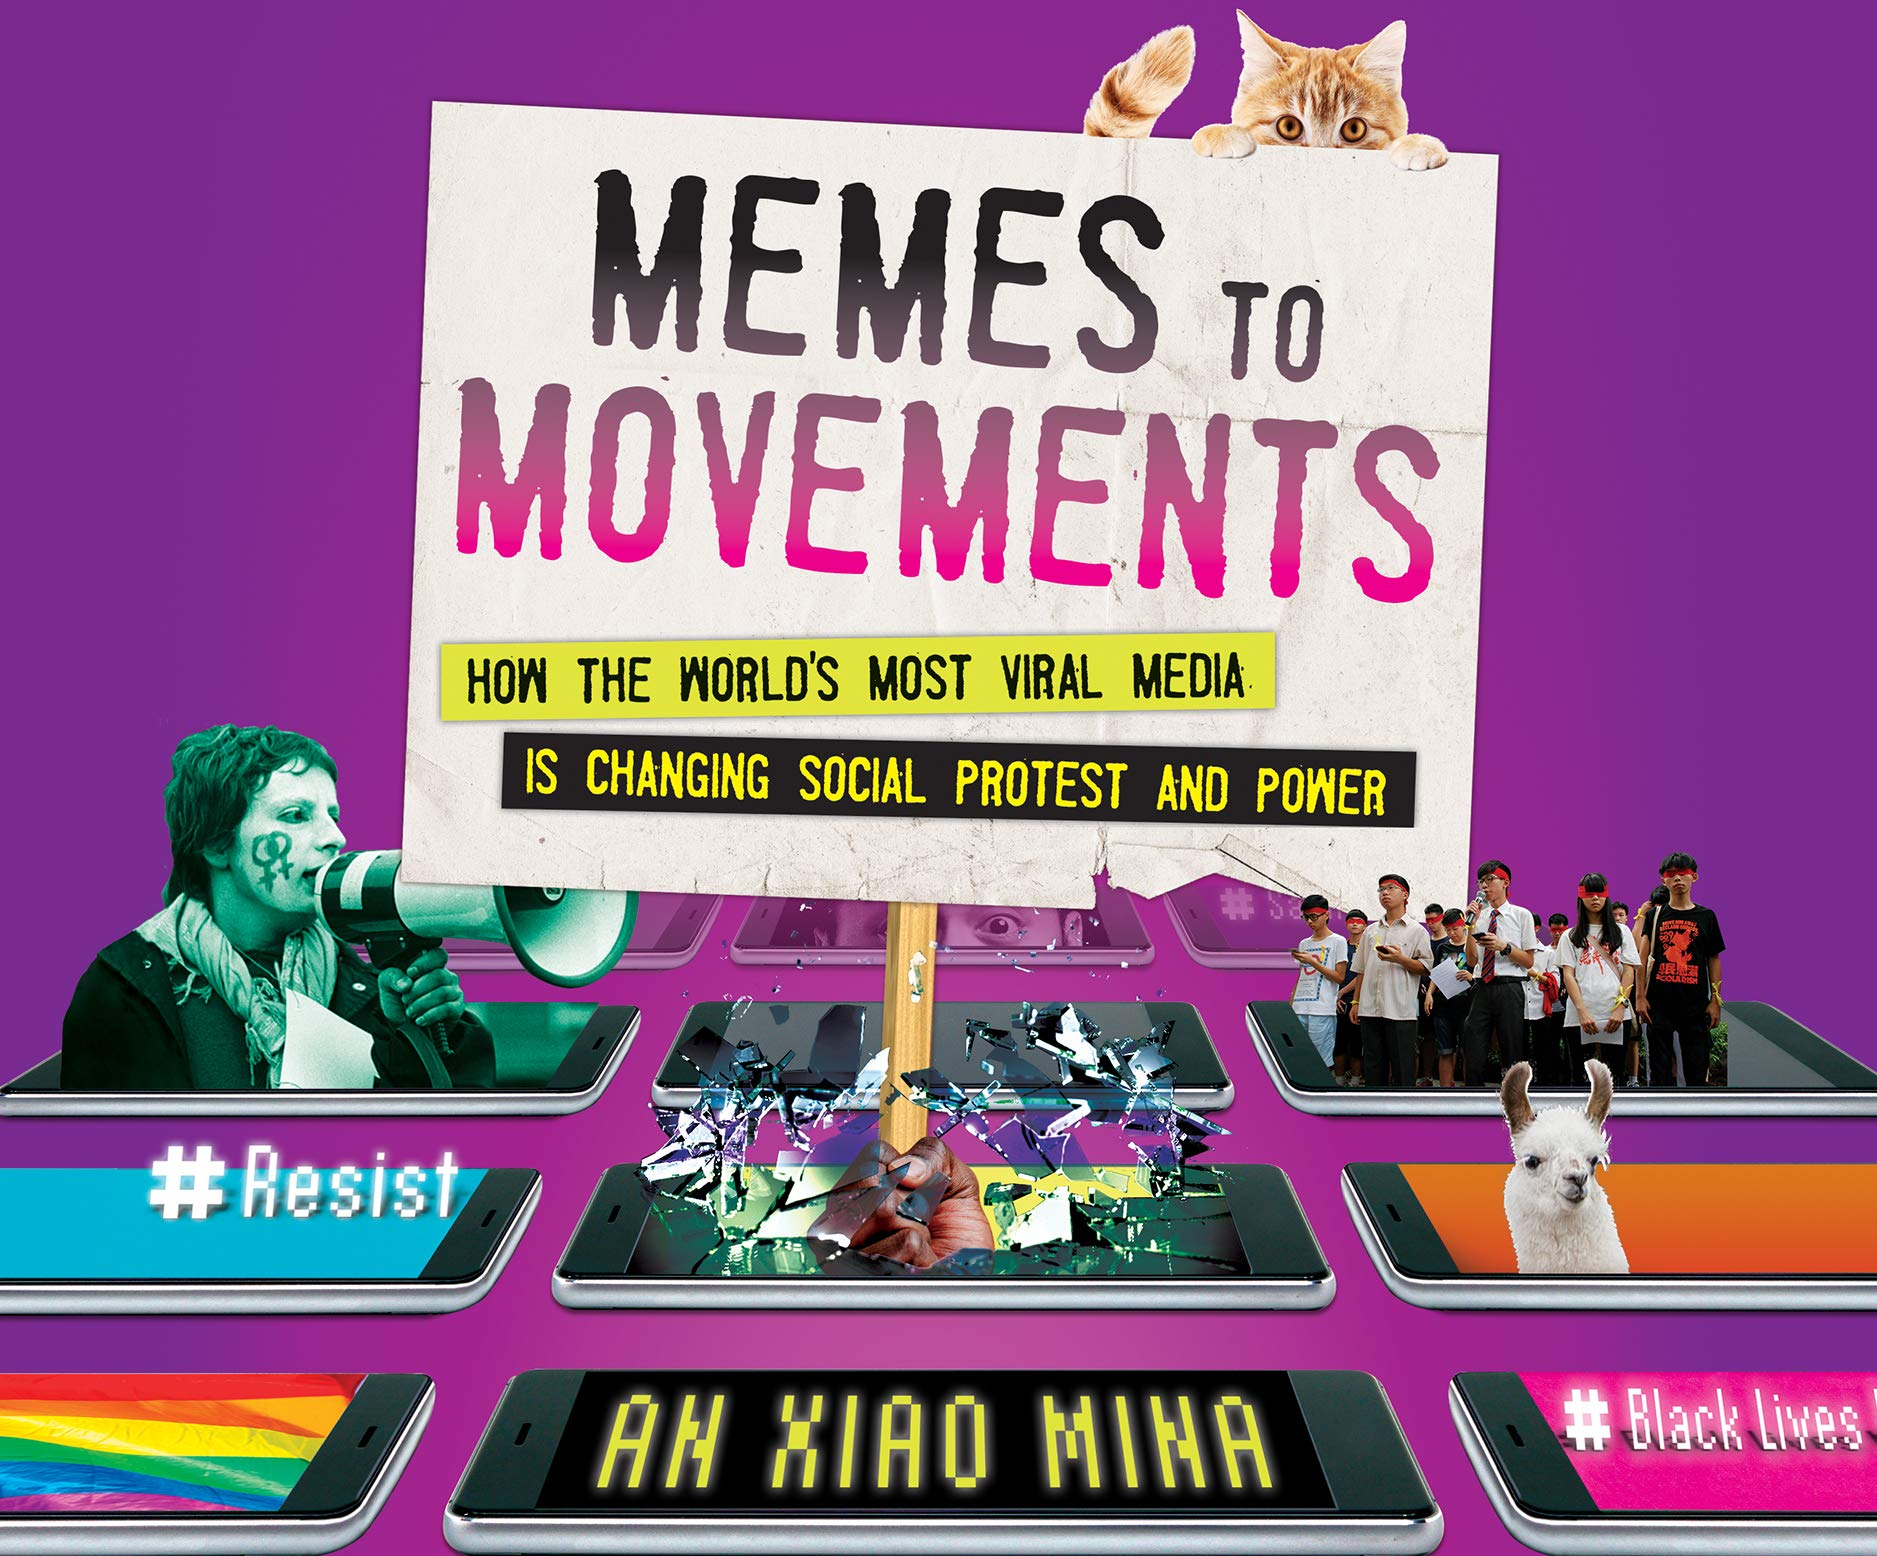 Memes to Movements: How the Worlds Most Viral Media Is Changing Social Protest and Power: Amazon.es: An Xiao Mina: Libros en idiomas extranjeros